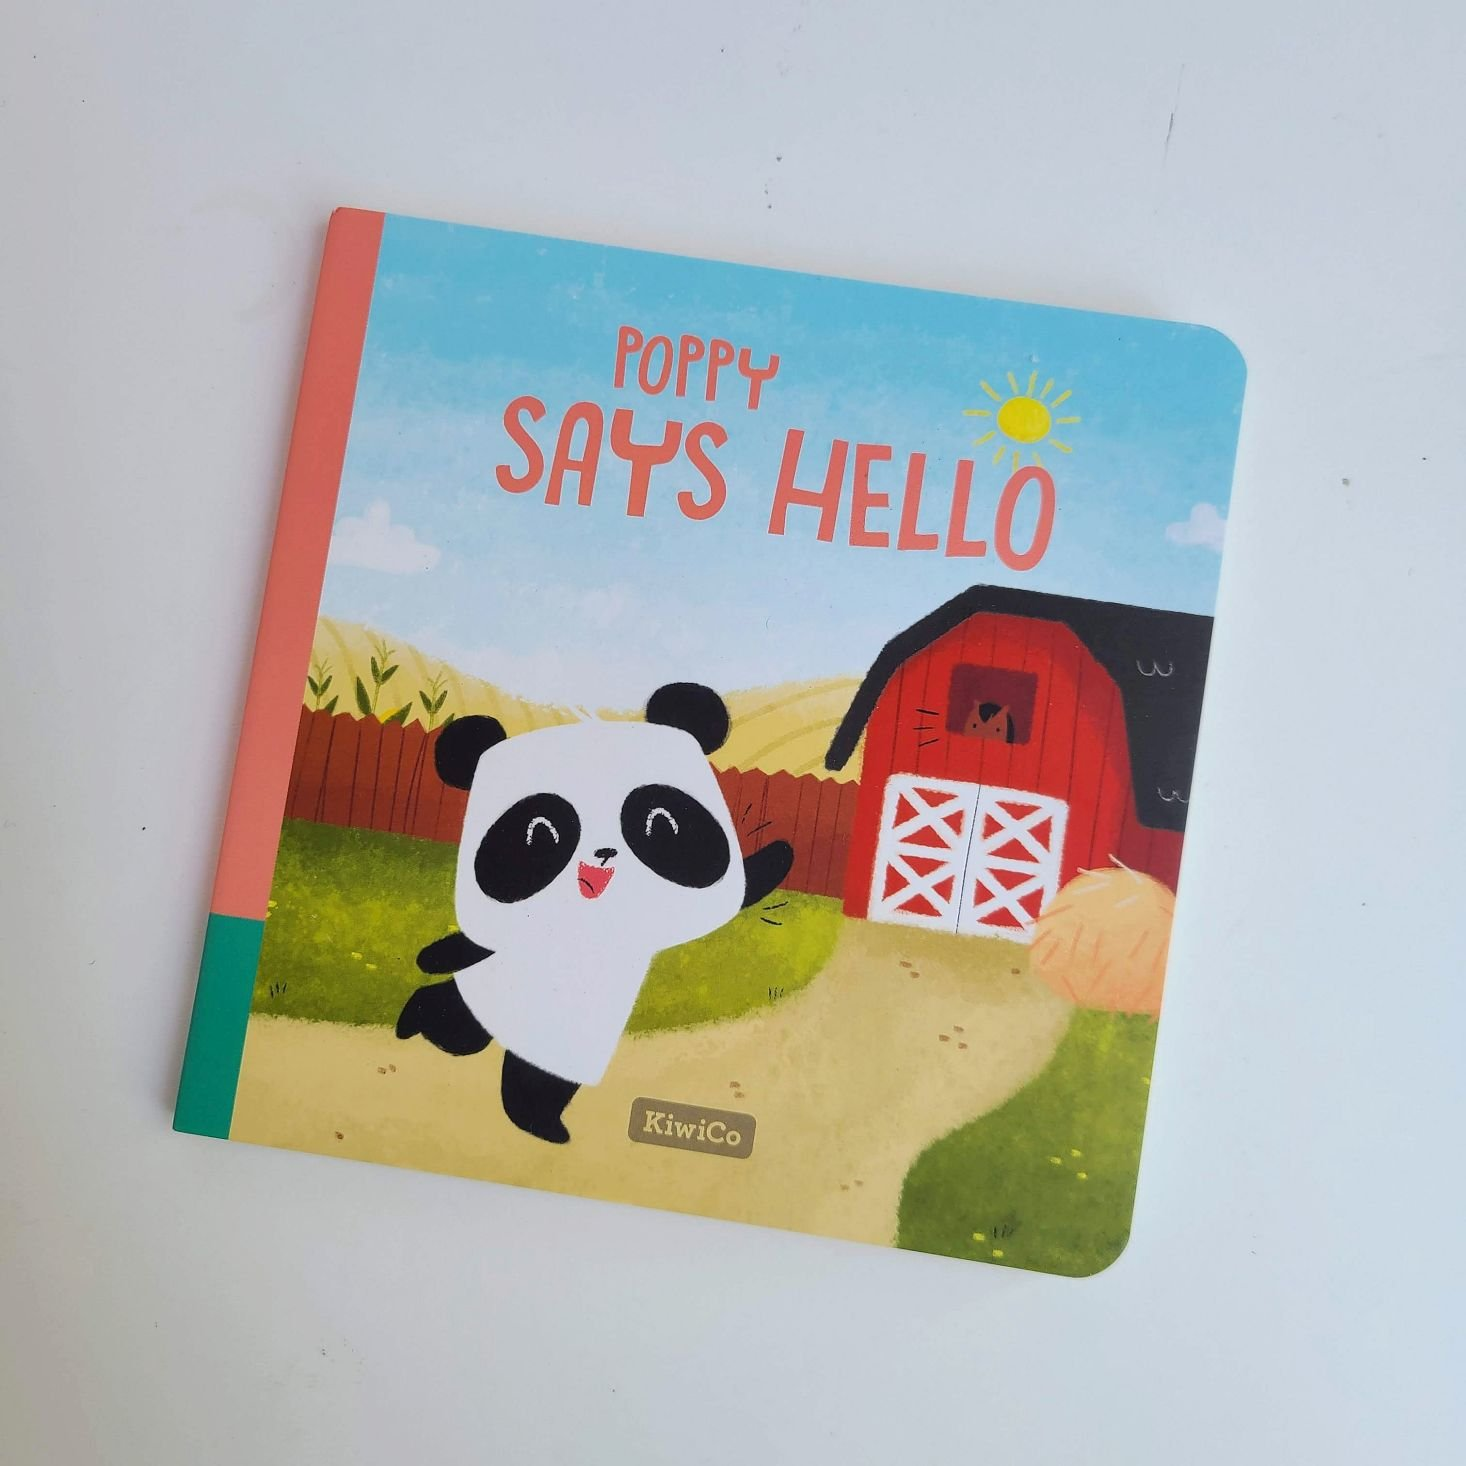 KiwiCo Panda Crate July 2020 poppy book cover